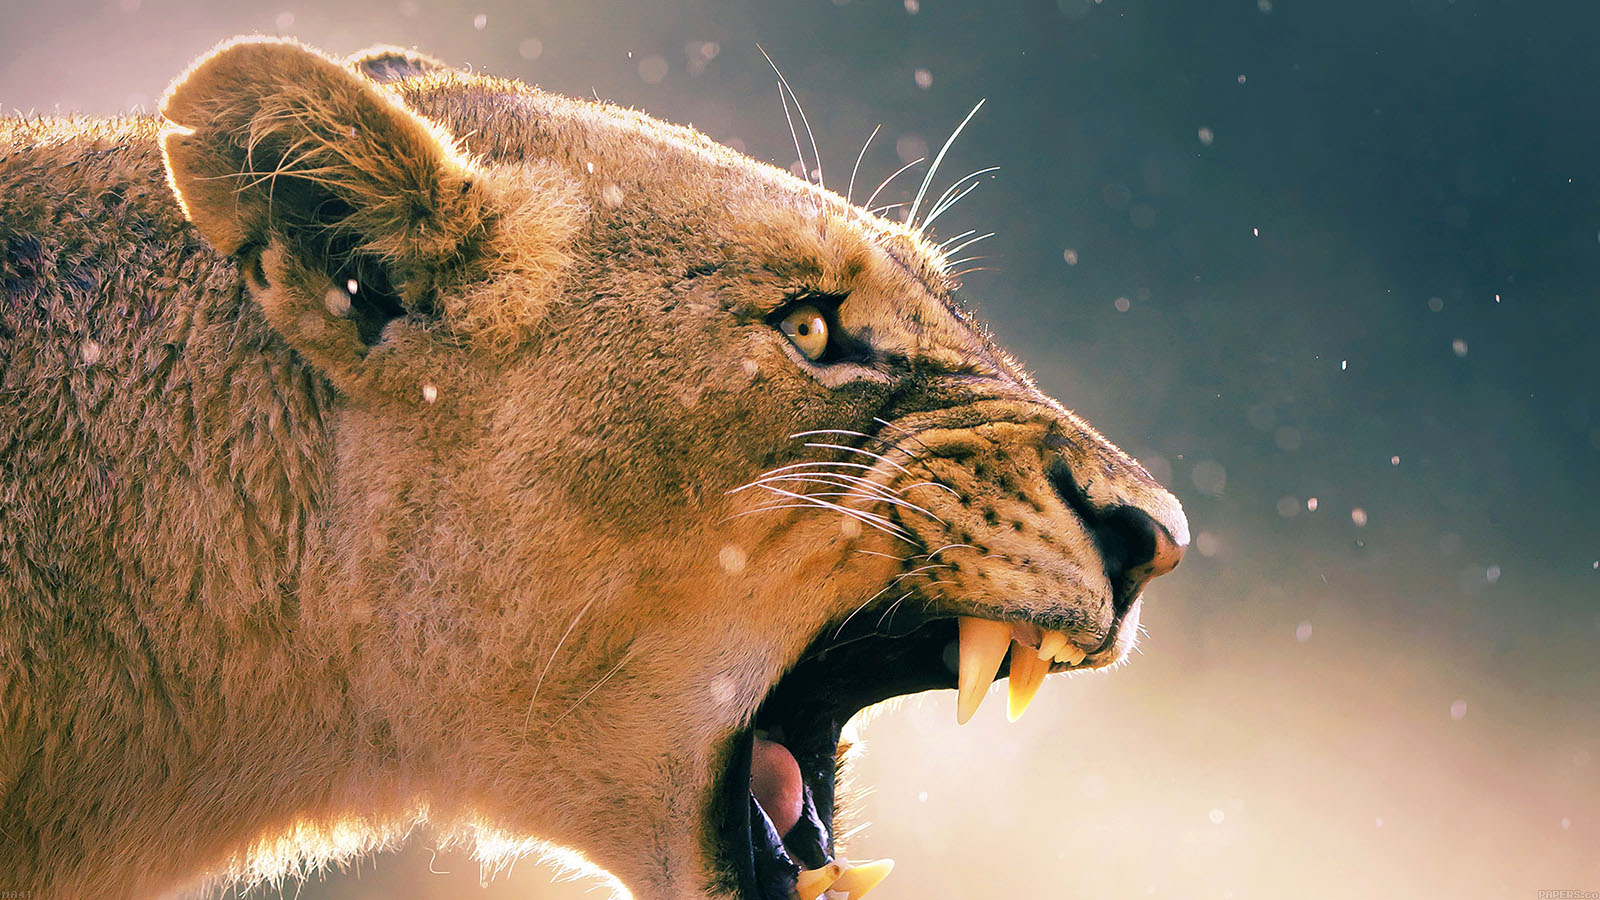 Free Fall Wallpaper For Laptop Ma41 Angry Lion One Animal Nature Papers Co